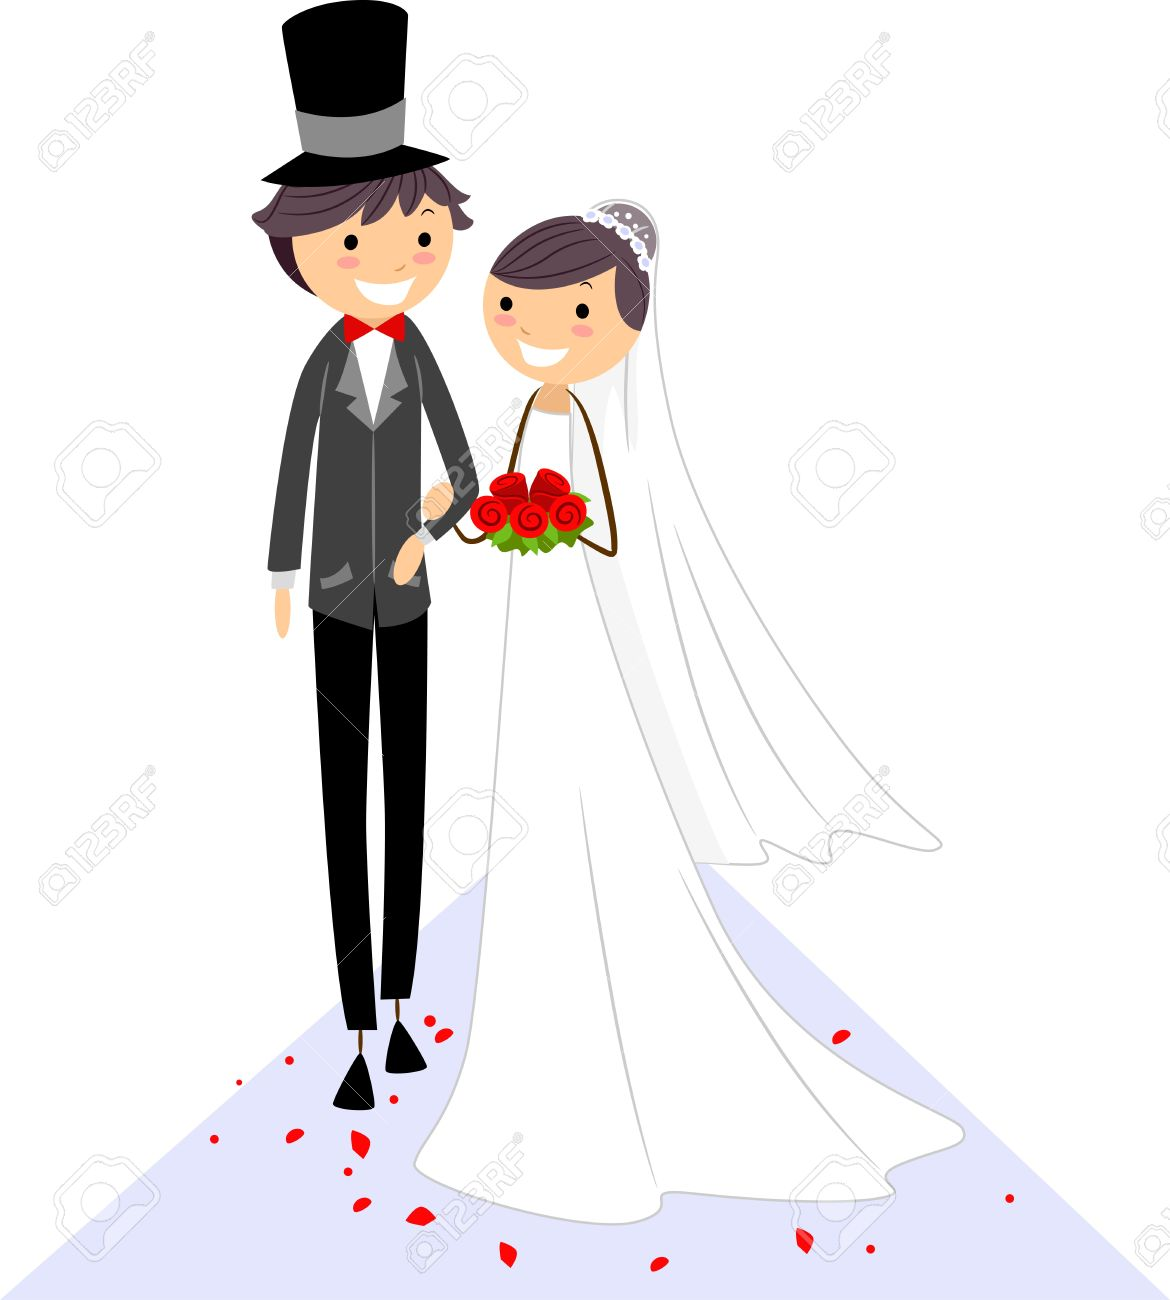 Illustration of a Bride and Groom Walking on the Aisle Stock Illustration - 9151177